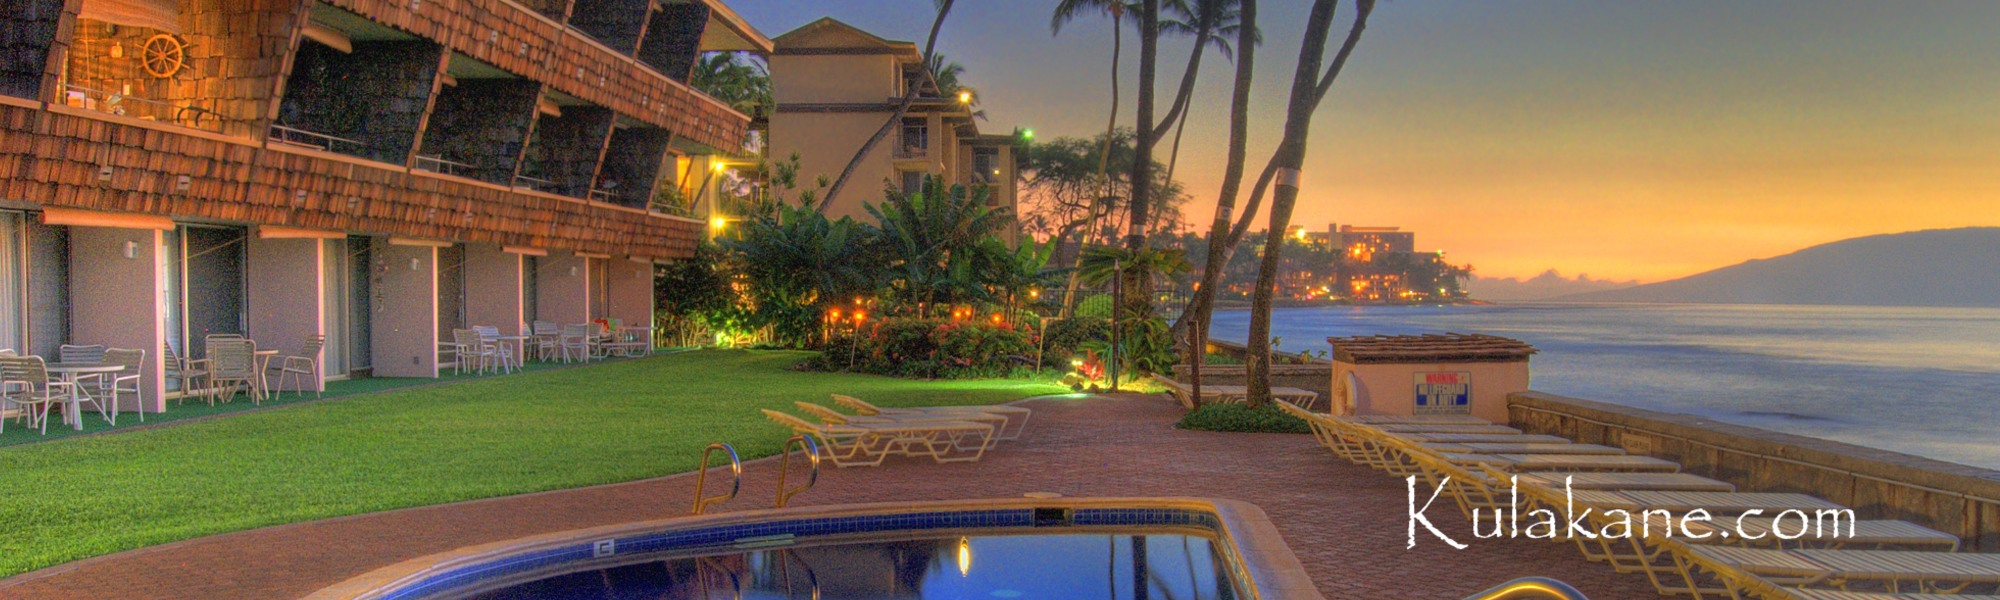 West Maui Vacation Rentals